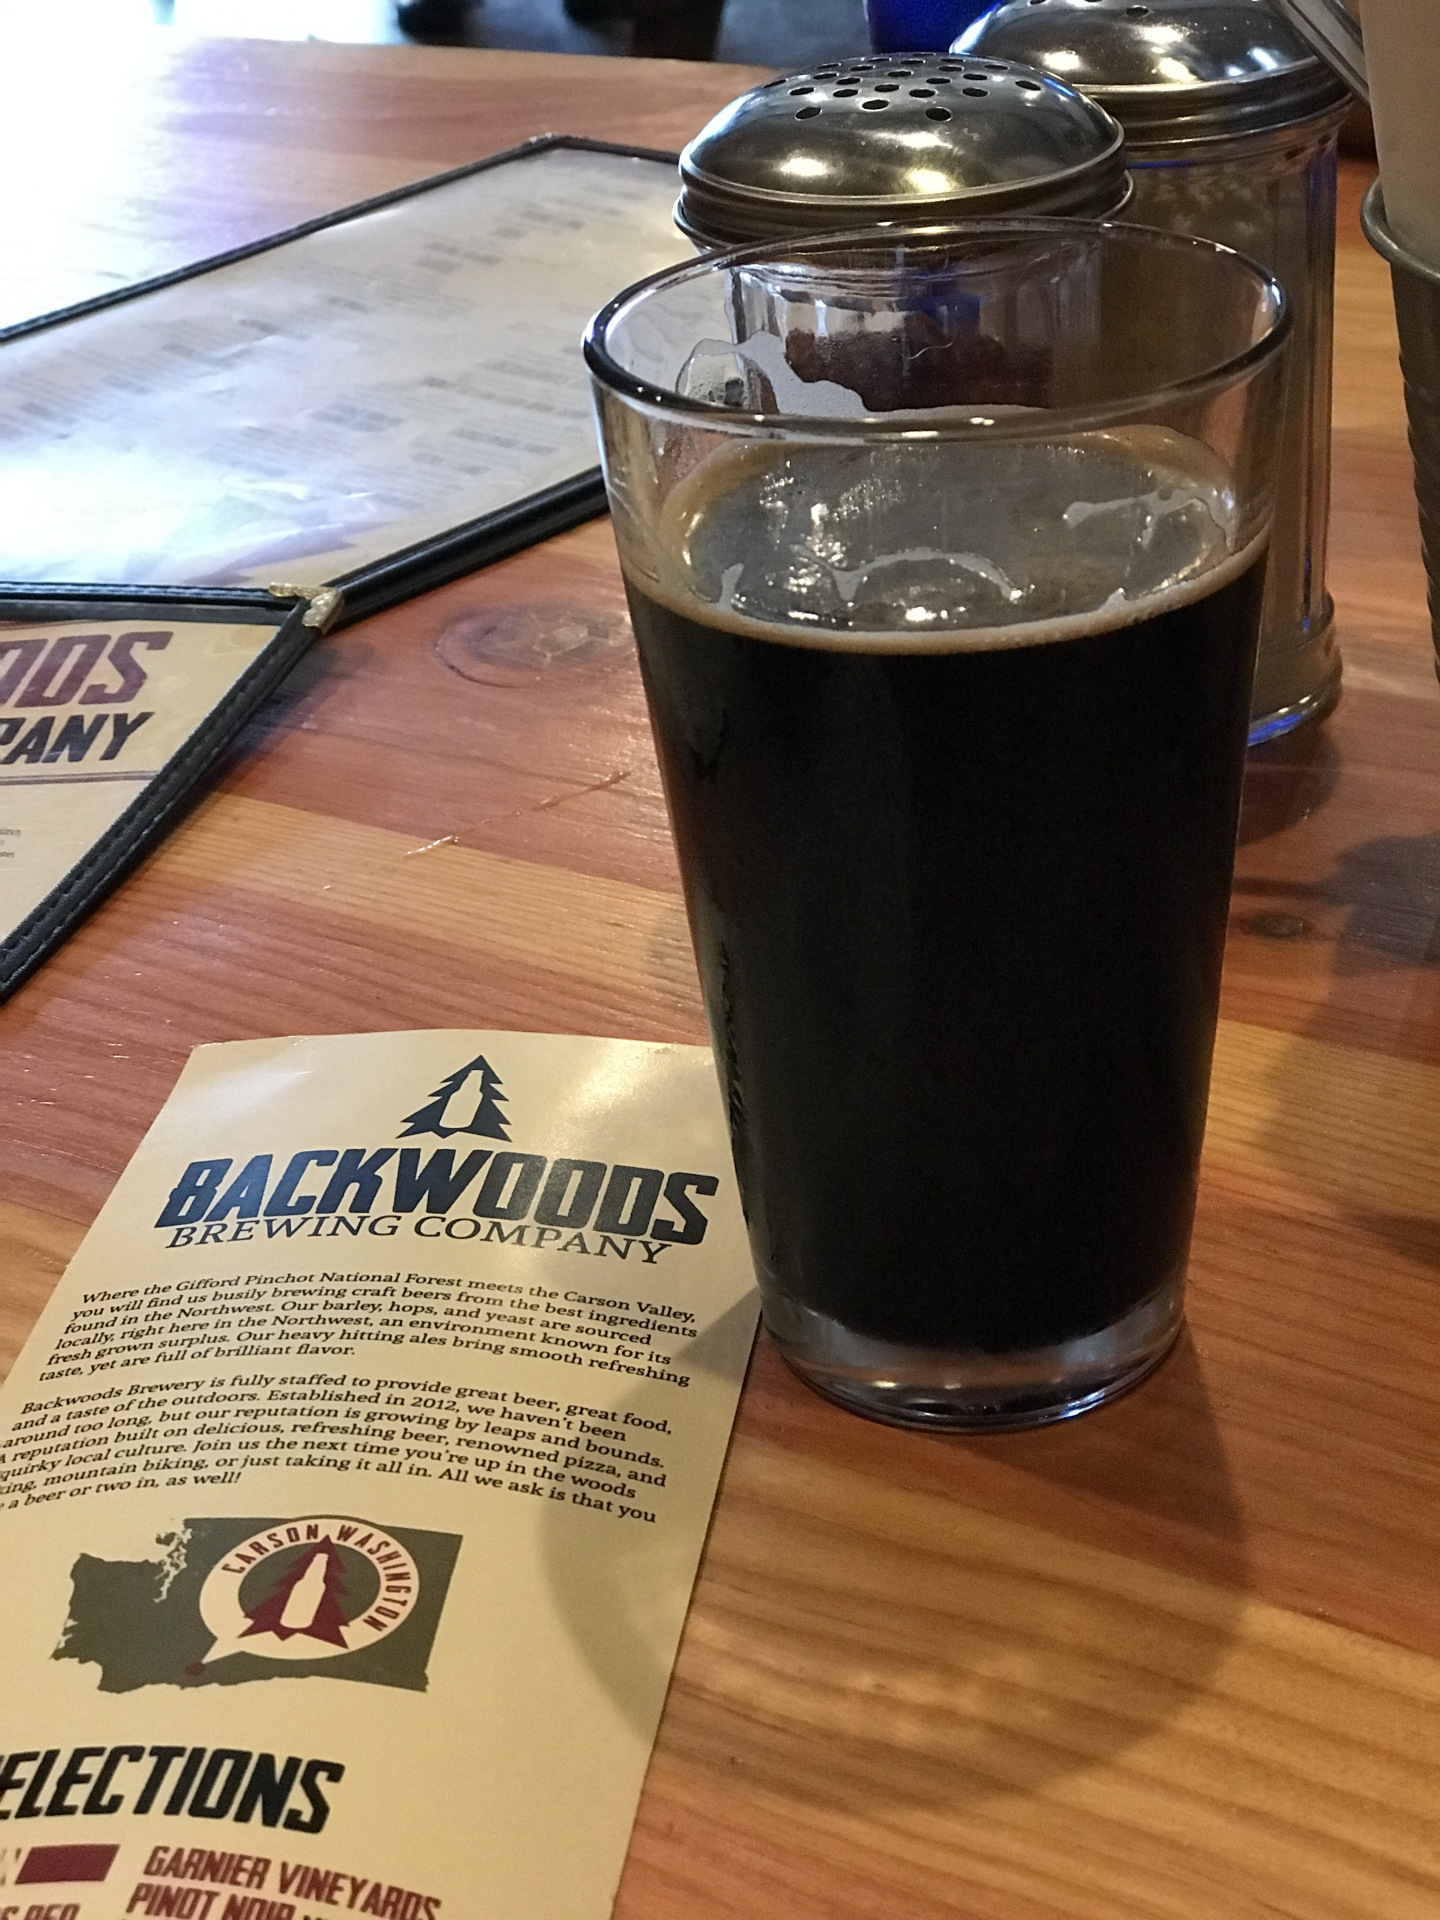 Backwoods Brewing Company